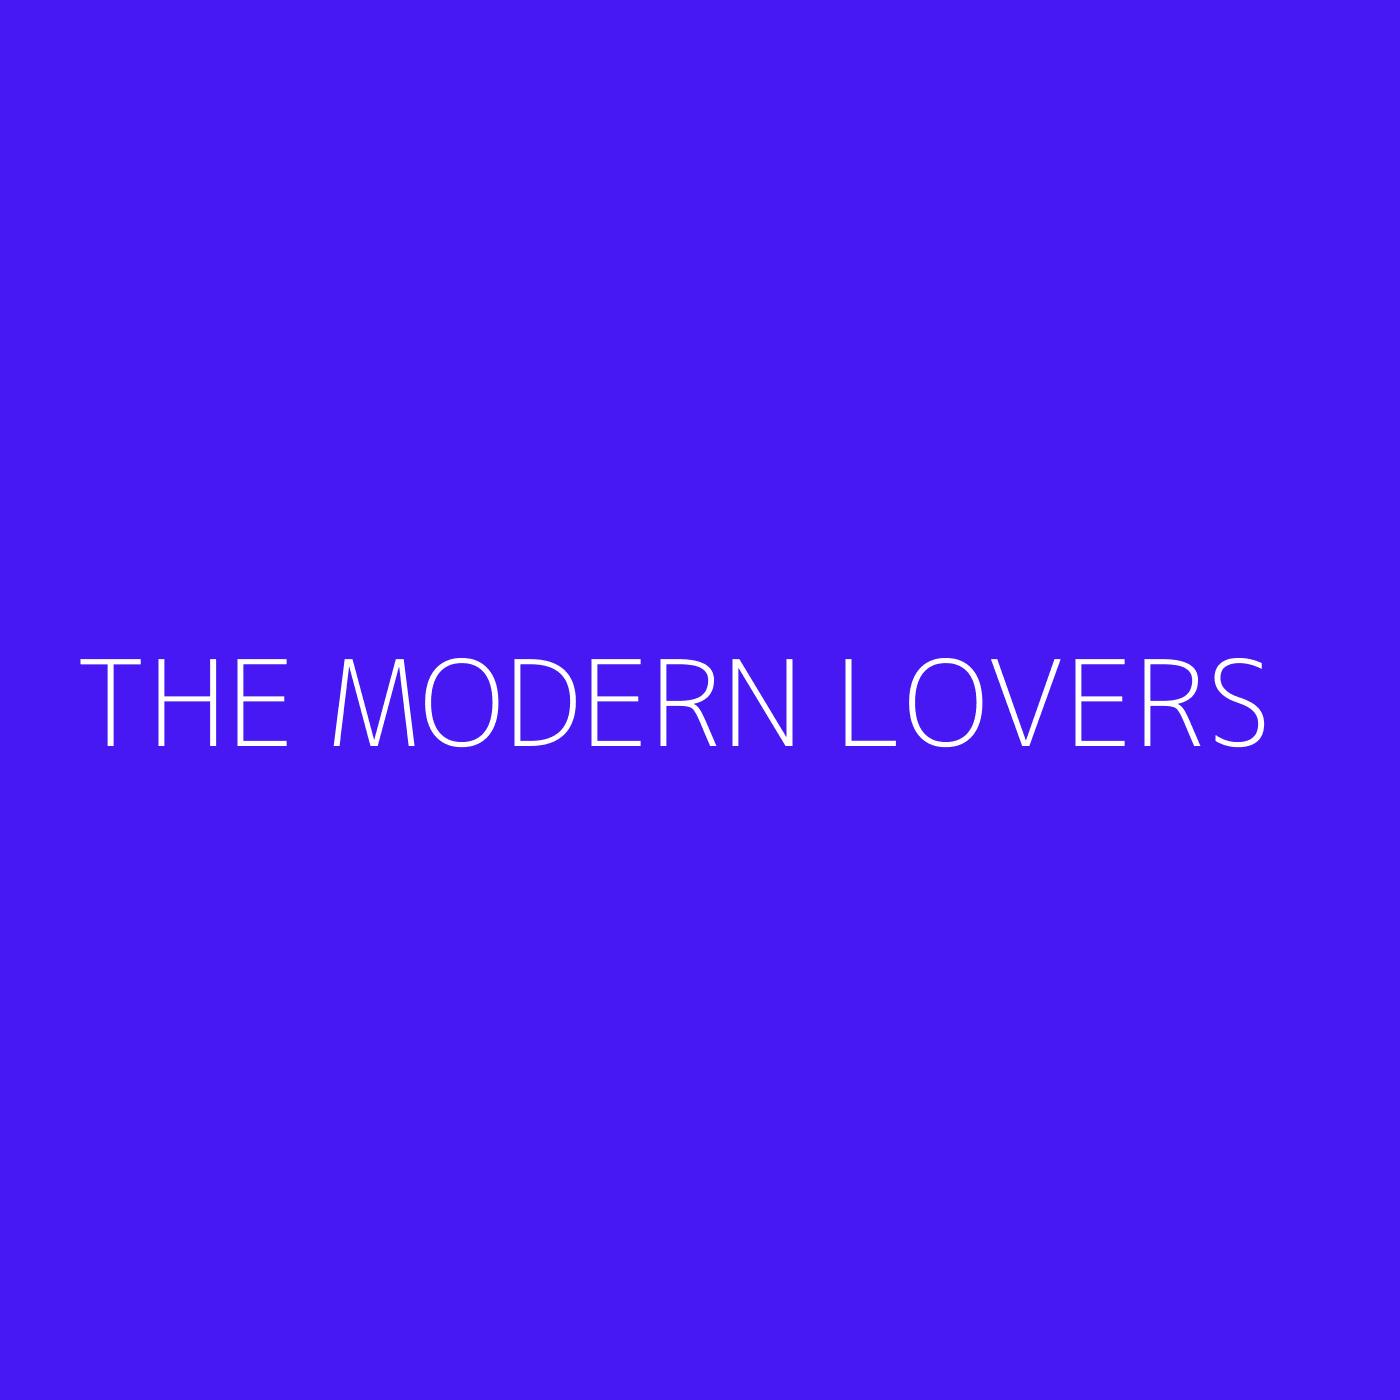 The Modern Lovers Playlist Artwork